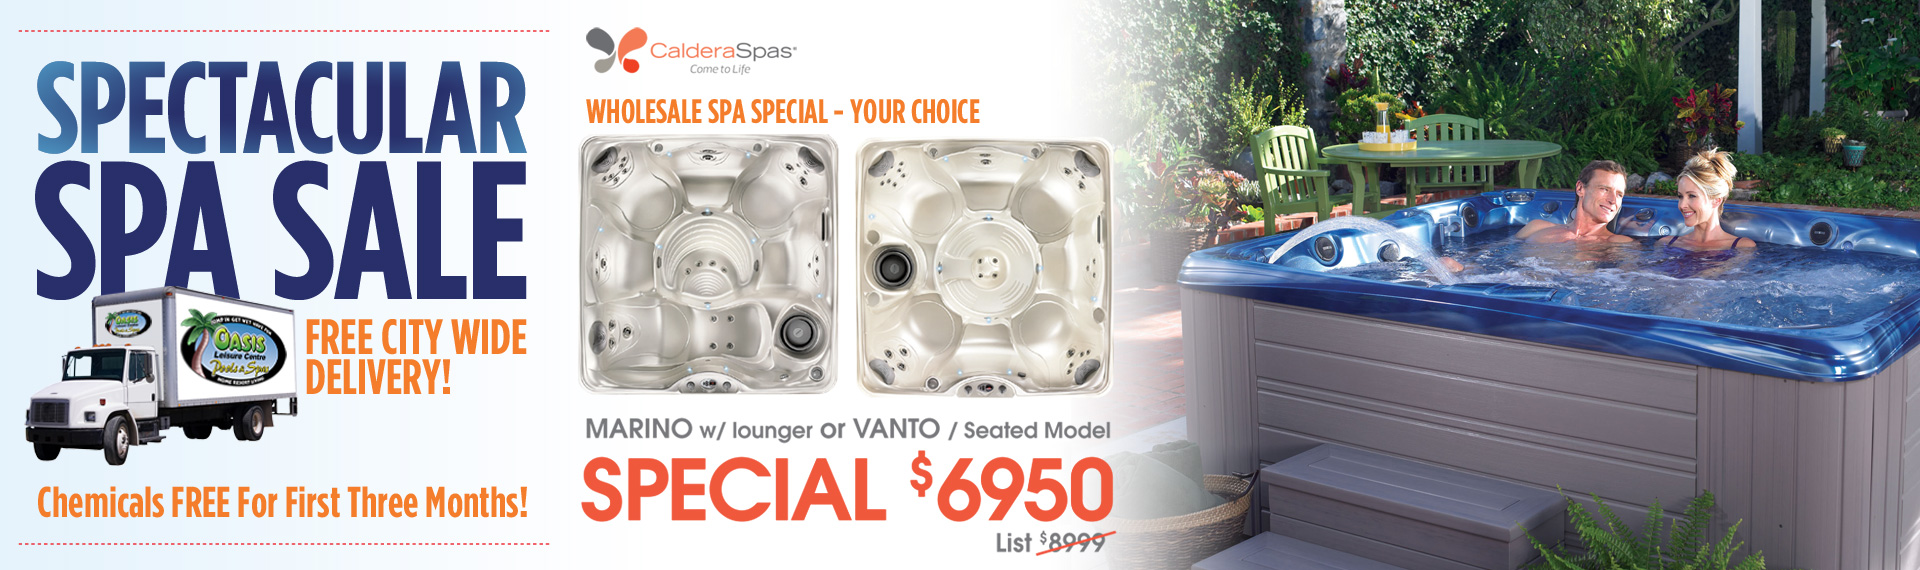 Spectacular Spa Sale